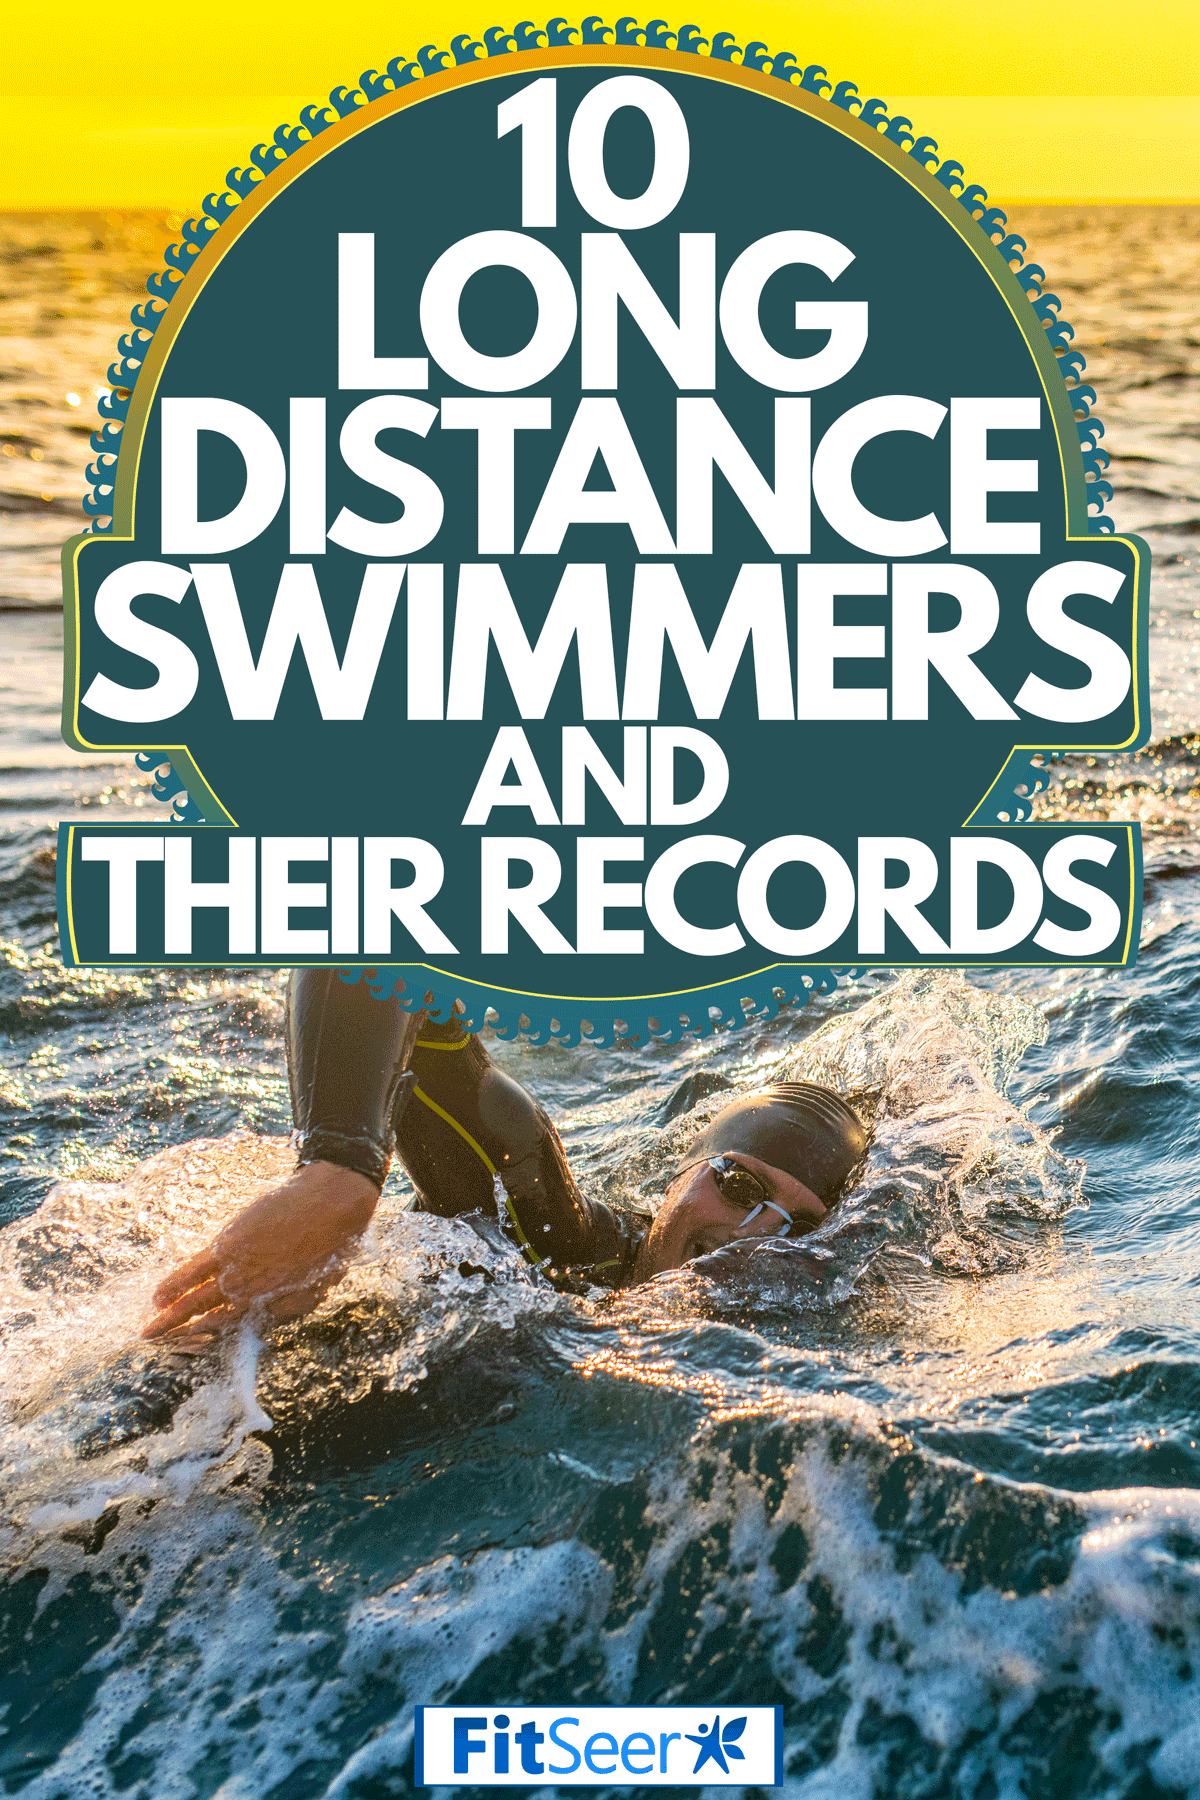 Two triathlete competing and swimming on open waters, 10 Long Distance Swimmers And Their Records